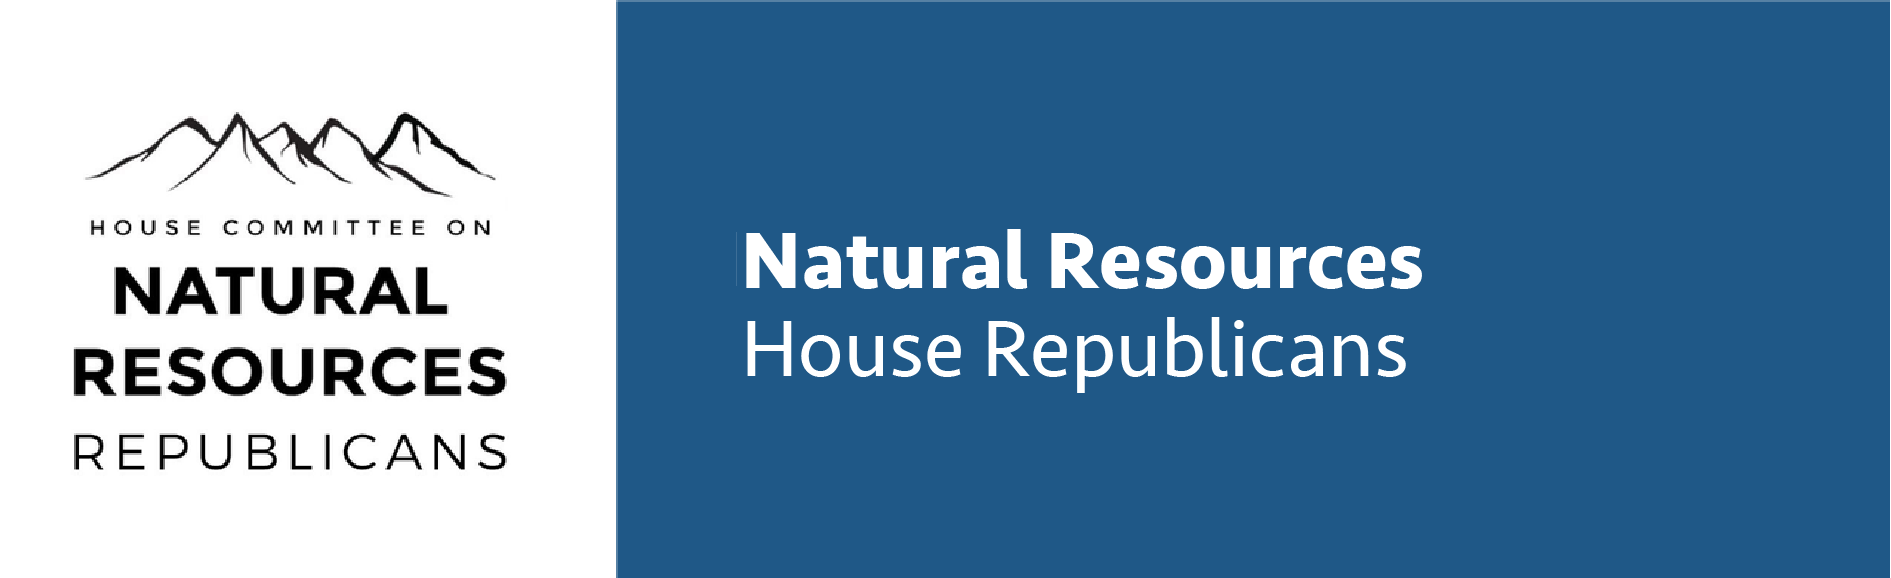 naturalresourcegopbutton-01.png